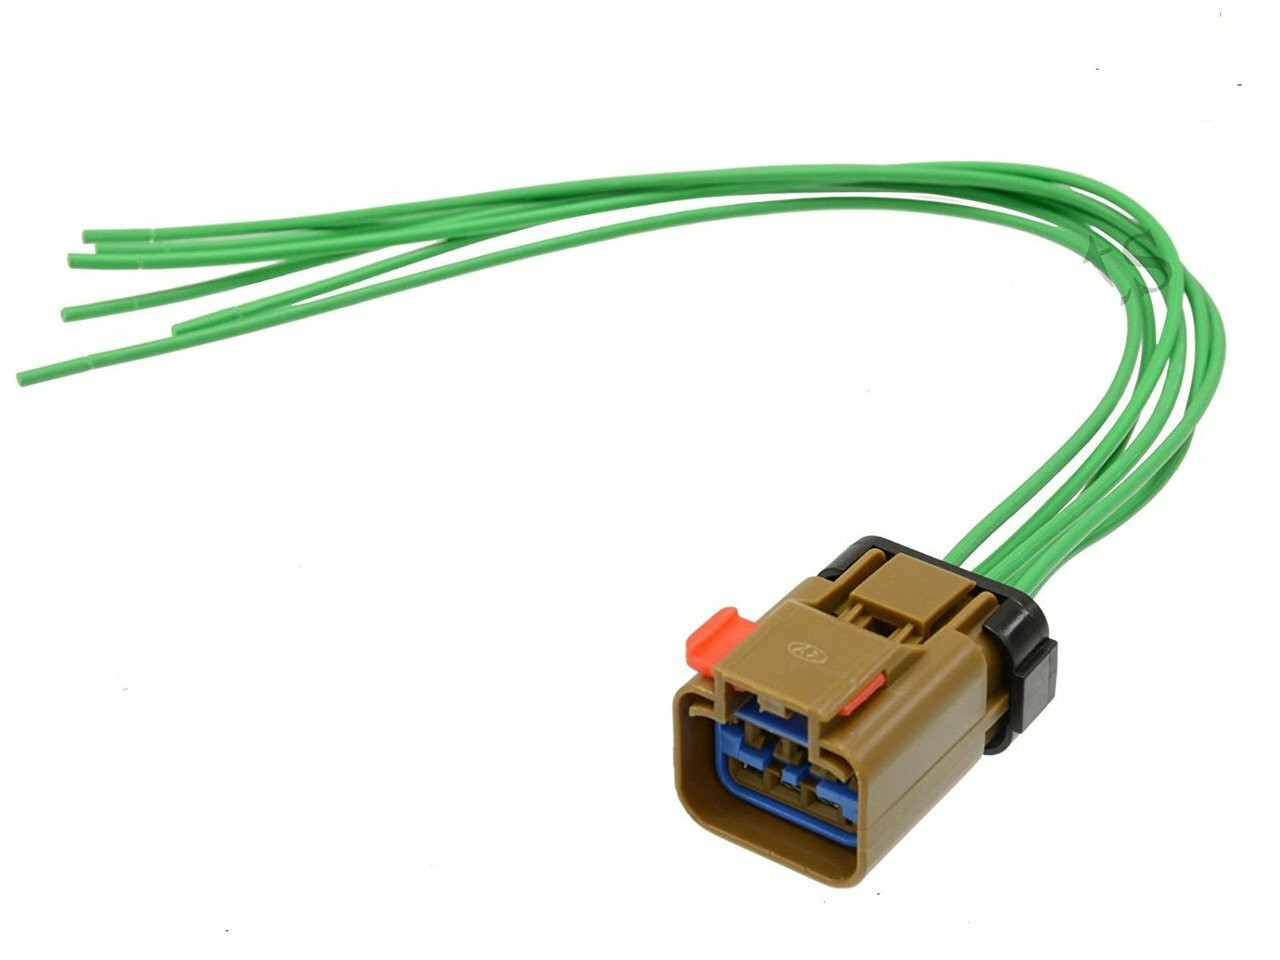 Pigtail Wiring Harness Experts Of Diagram Gm For Vehicles Connector Kit Repairs Or Replaces Power Rh Michiganmotorsports Com Connectors Car